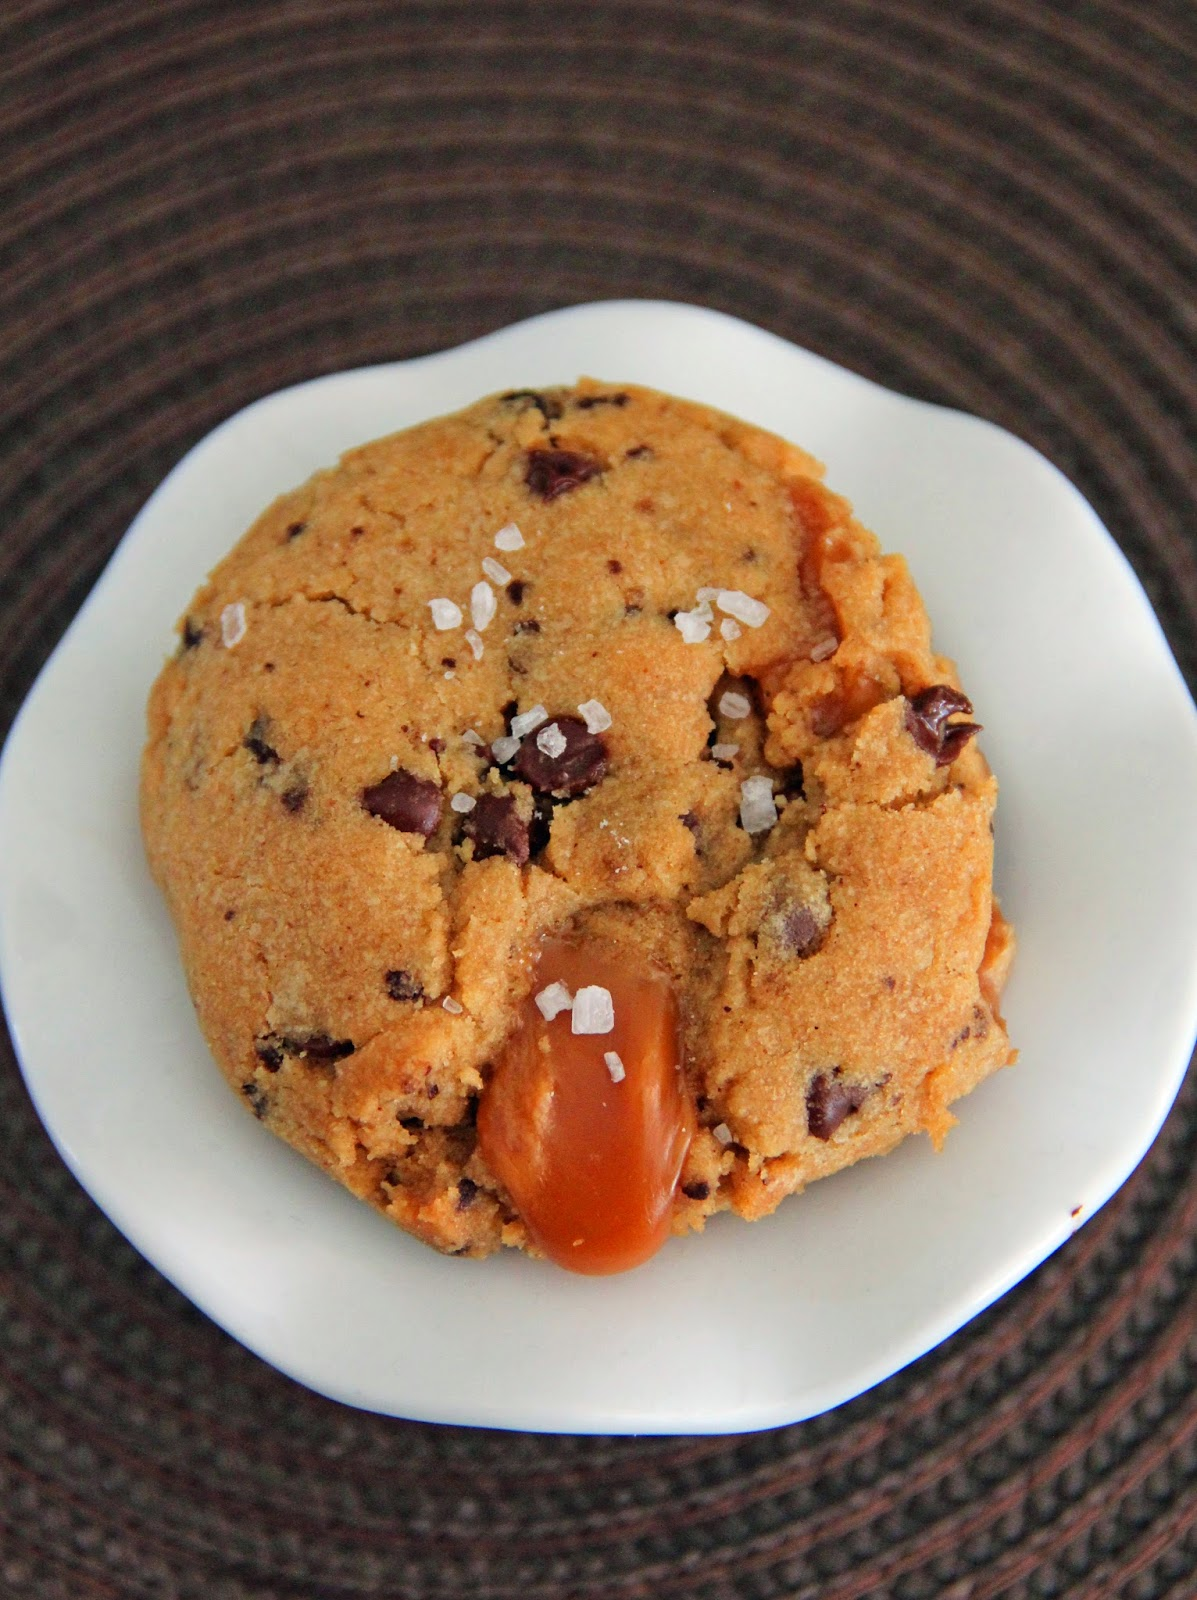 Jo and Sue: Mocha Browned Butter Salted Caramel Cookies